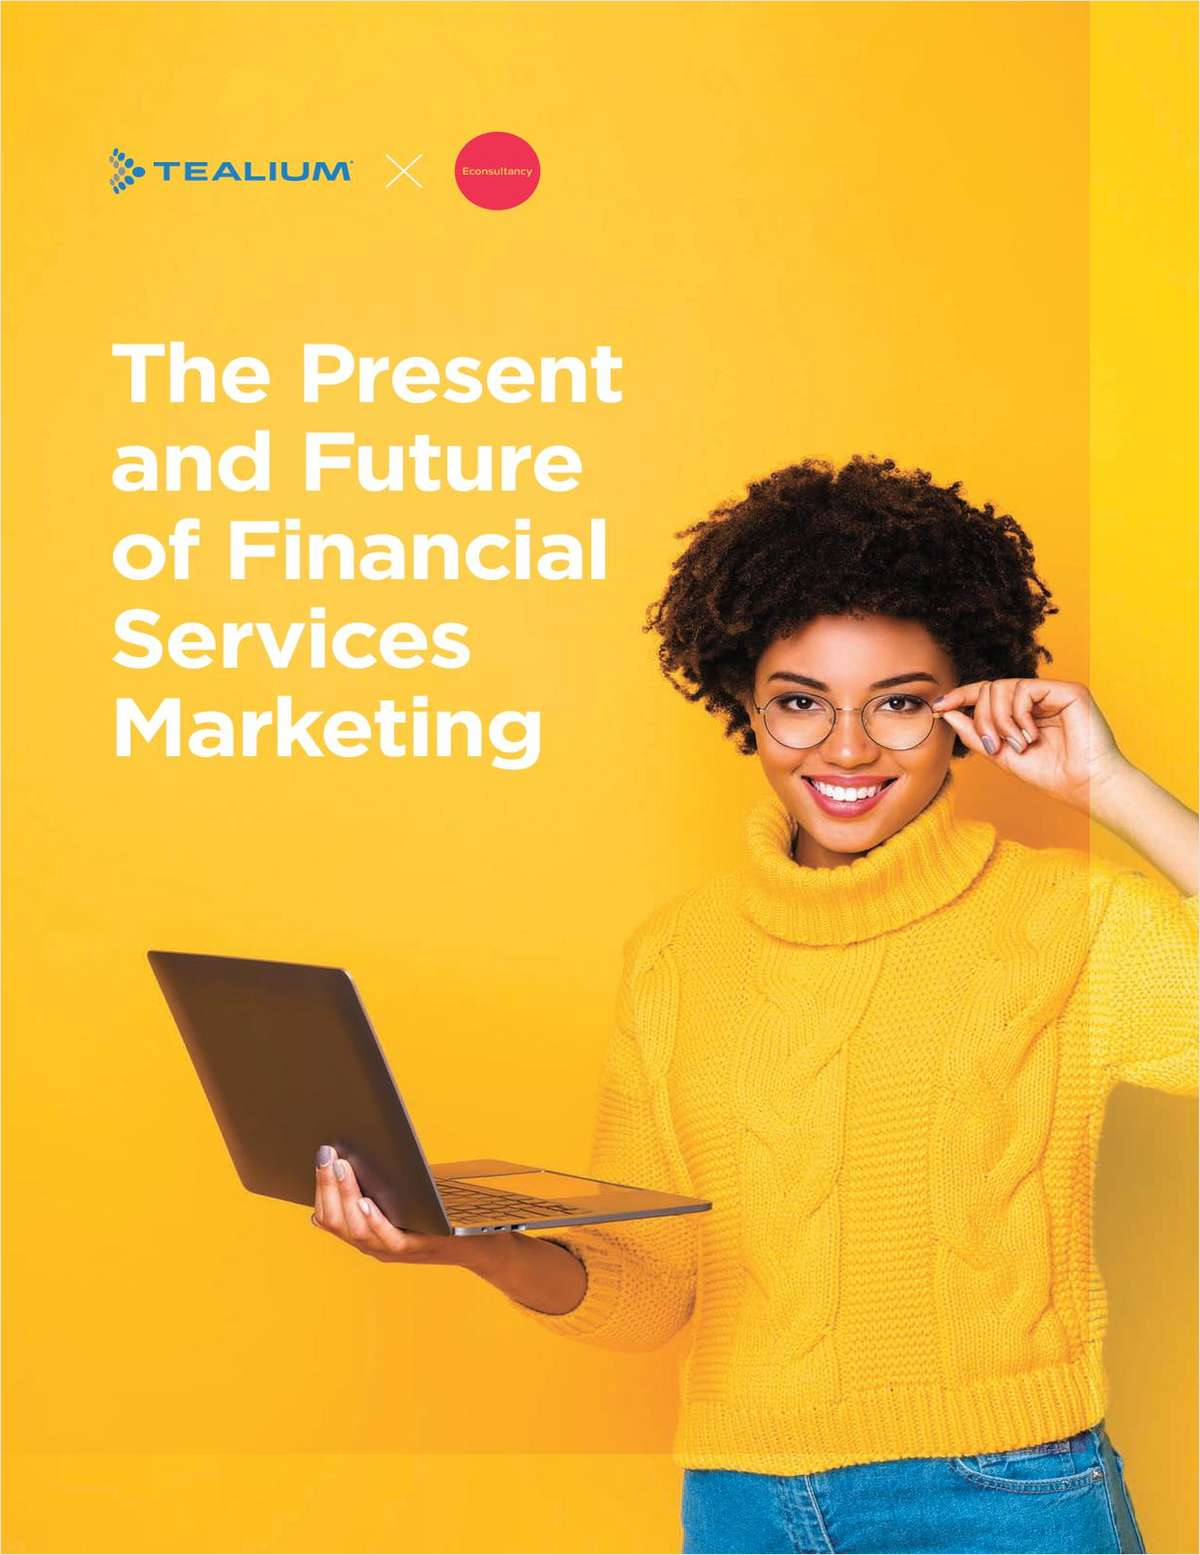 The Present and Future of Financial Services Marketing